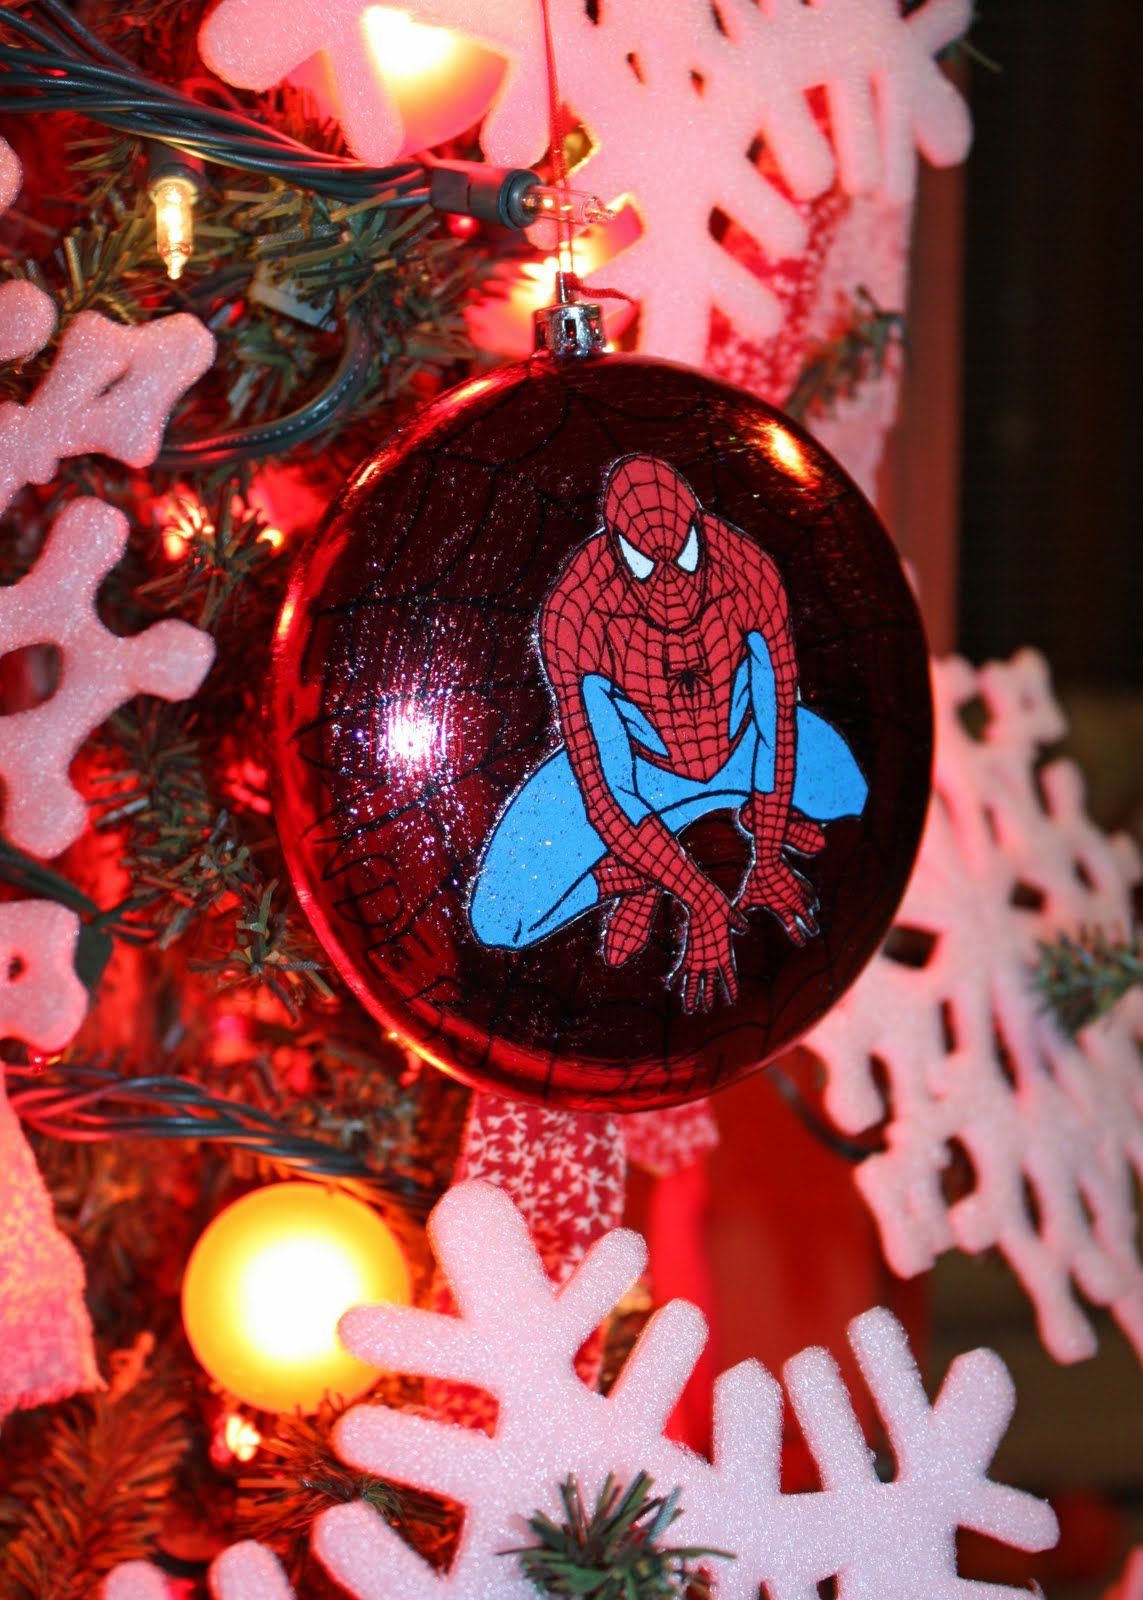 Every Year I Make Peepers A Ornament For Christmas His First Christmas I Used Fimo Clay Made A Hand Print Christmas Ornaments Spiderman Christmas Ornaments